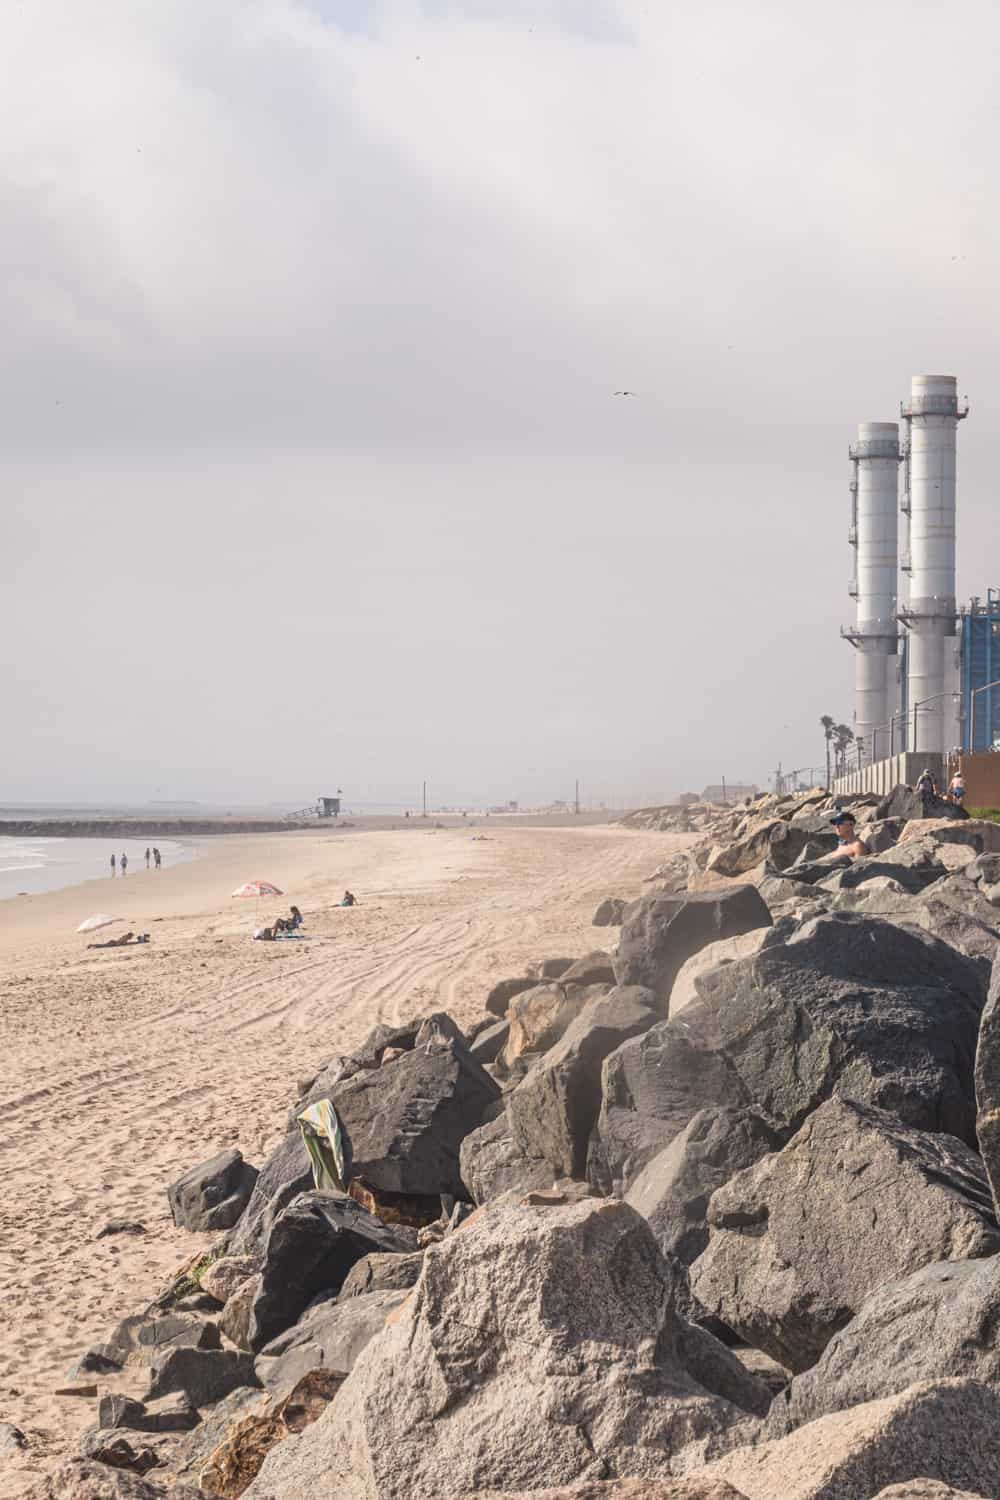 the smoke stacks at El Porto - Manhattan beach, you can see the ocean, waves and sand.